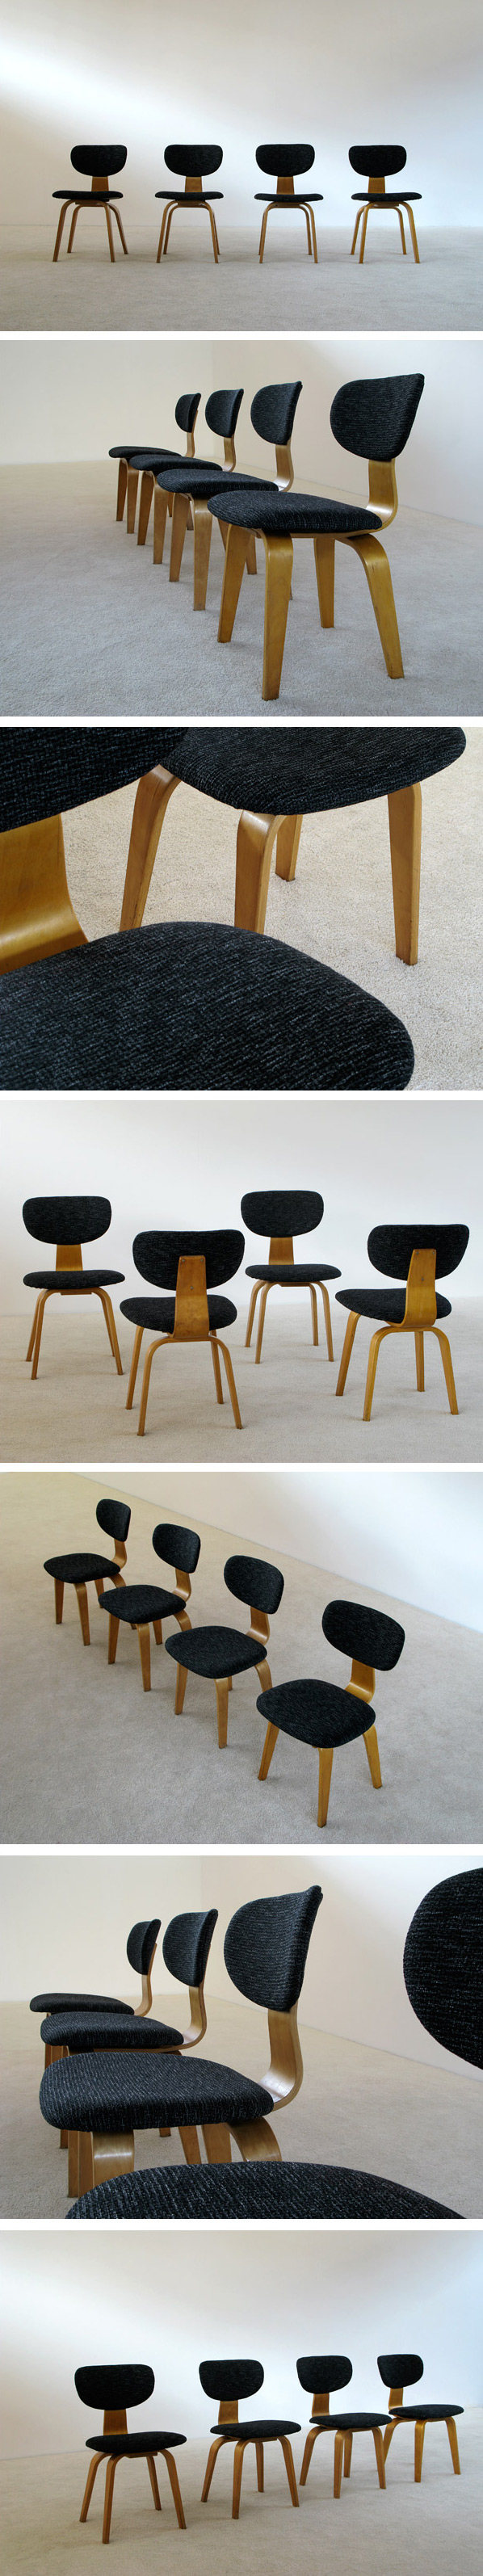 4 Cees Braakman SB03 dinning chairs UMS Pastoe Large